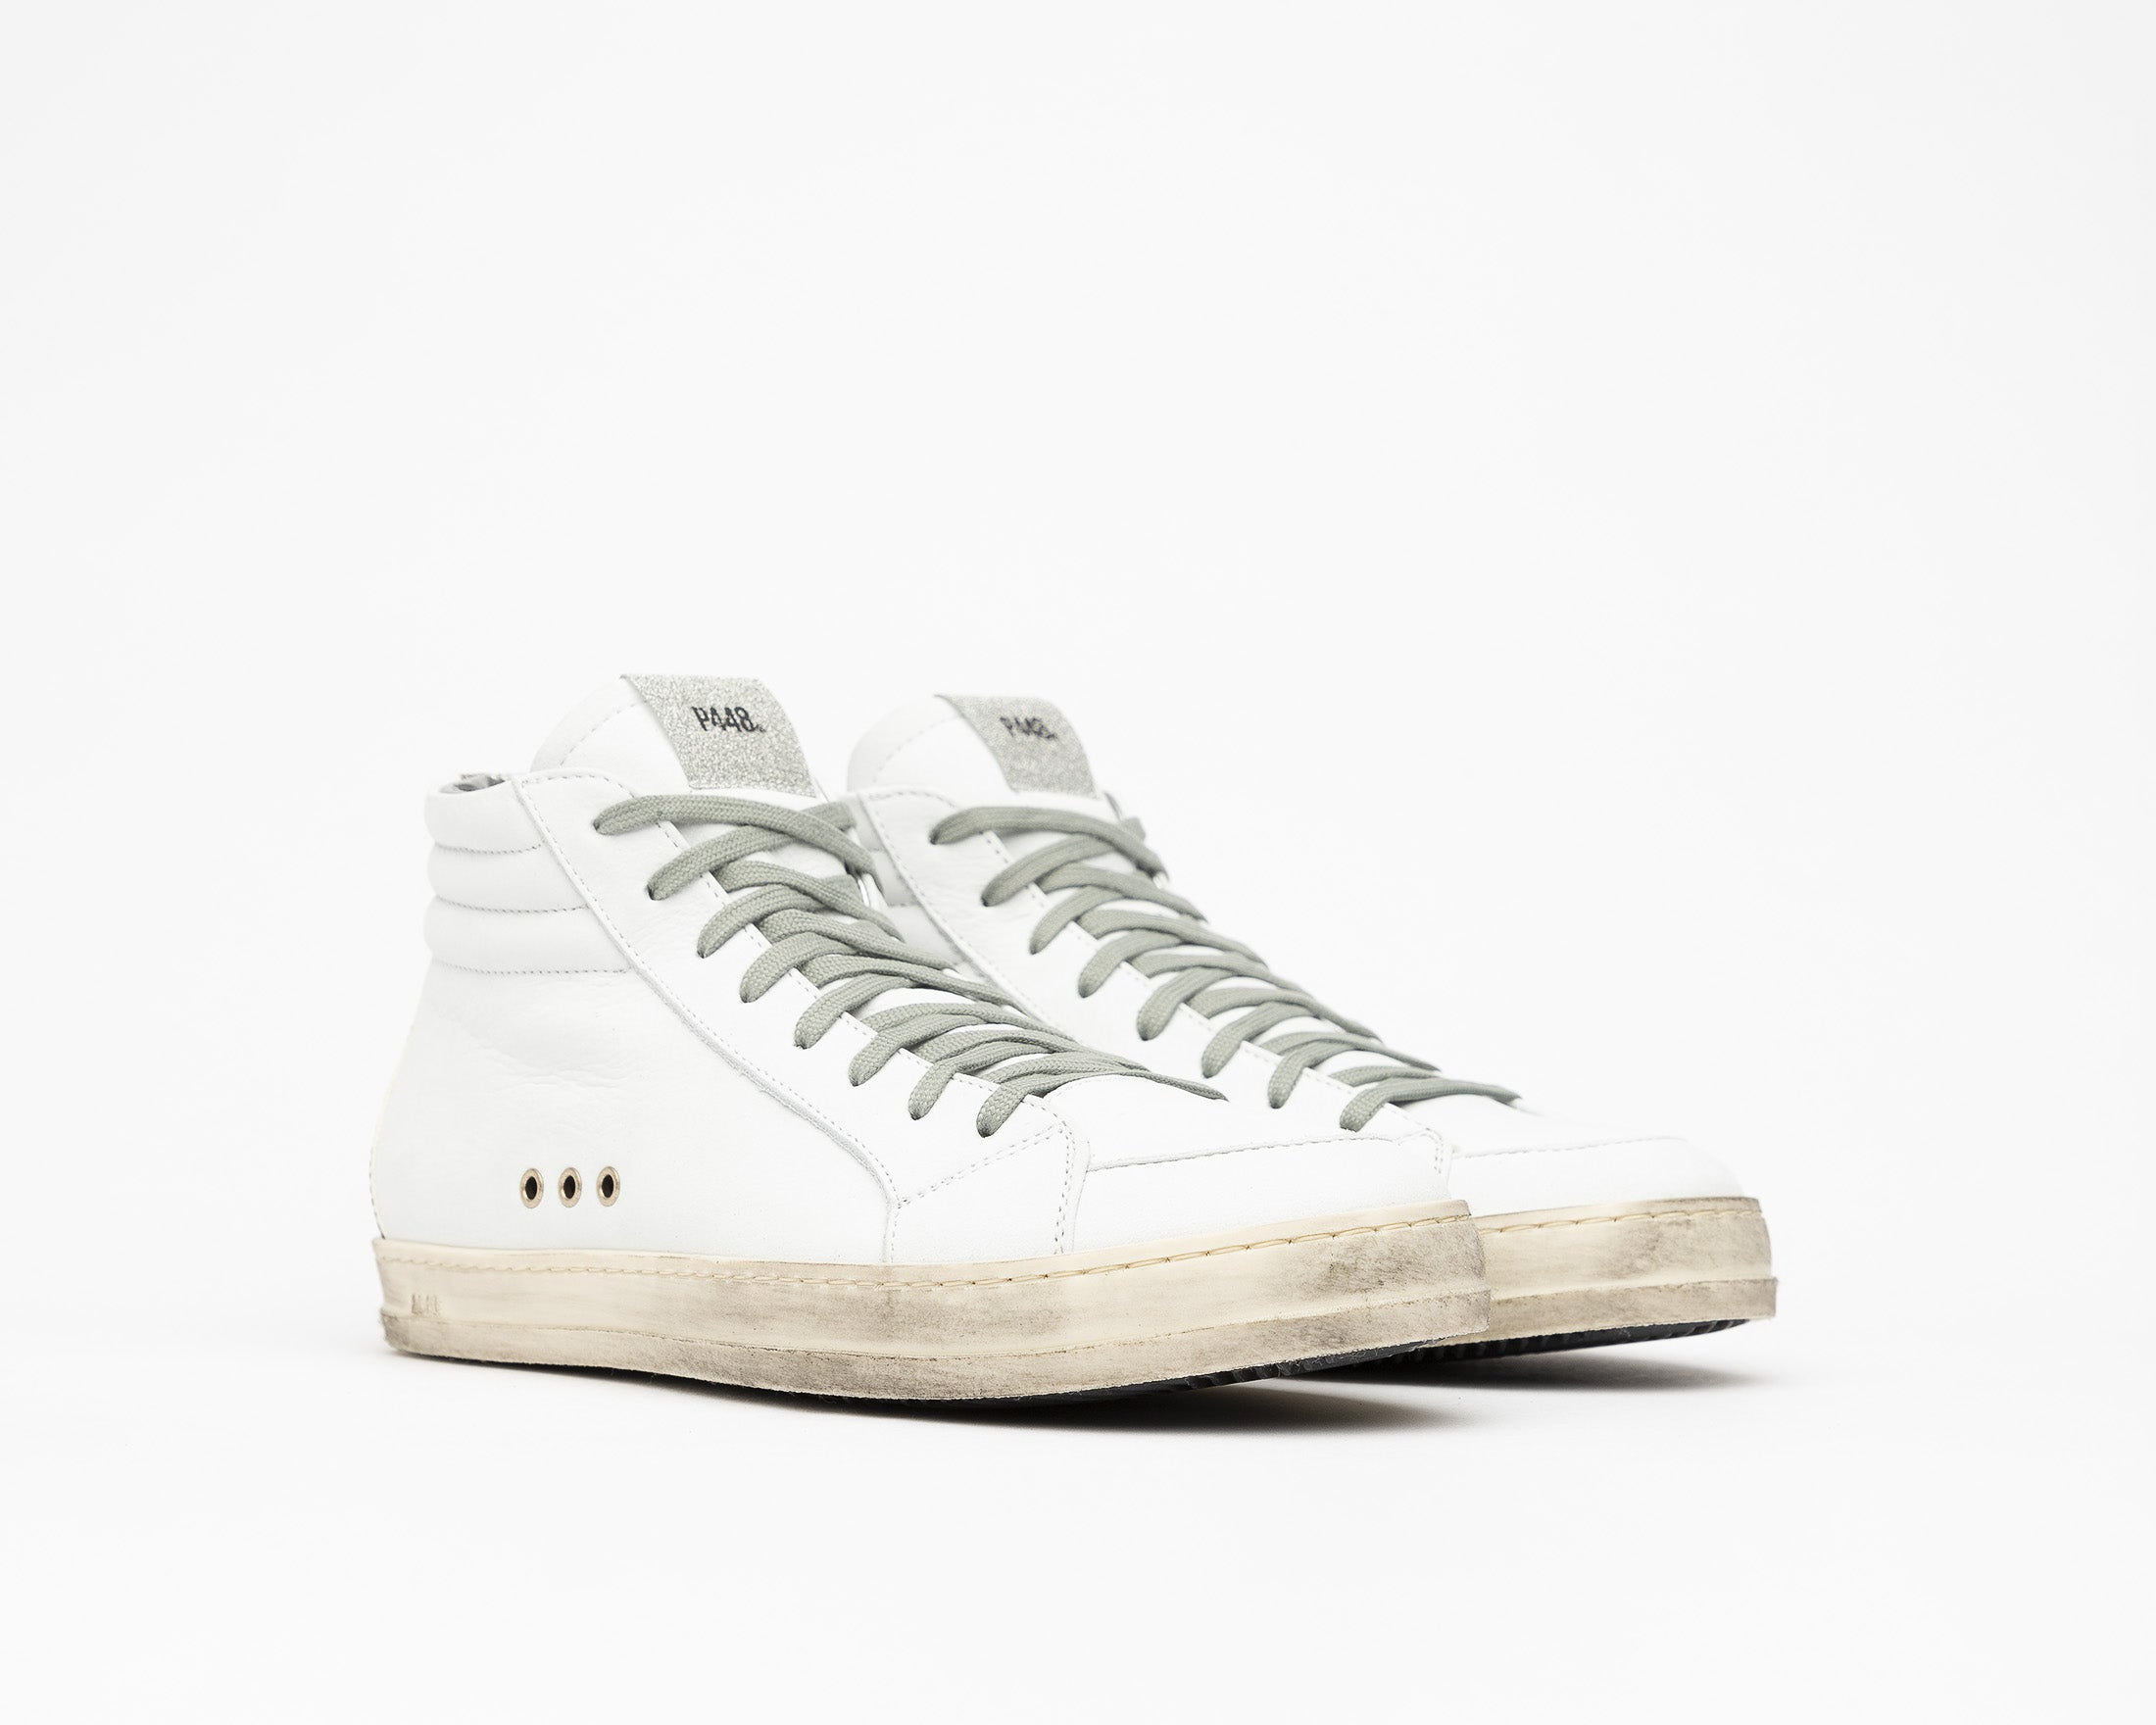 Skate High-Top Sneaker in White/Twister Python - Side